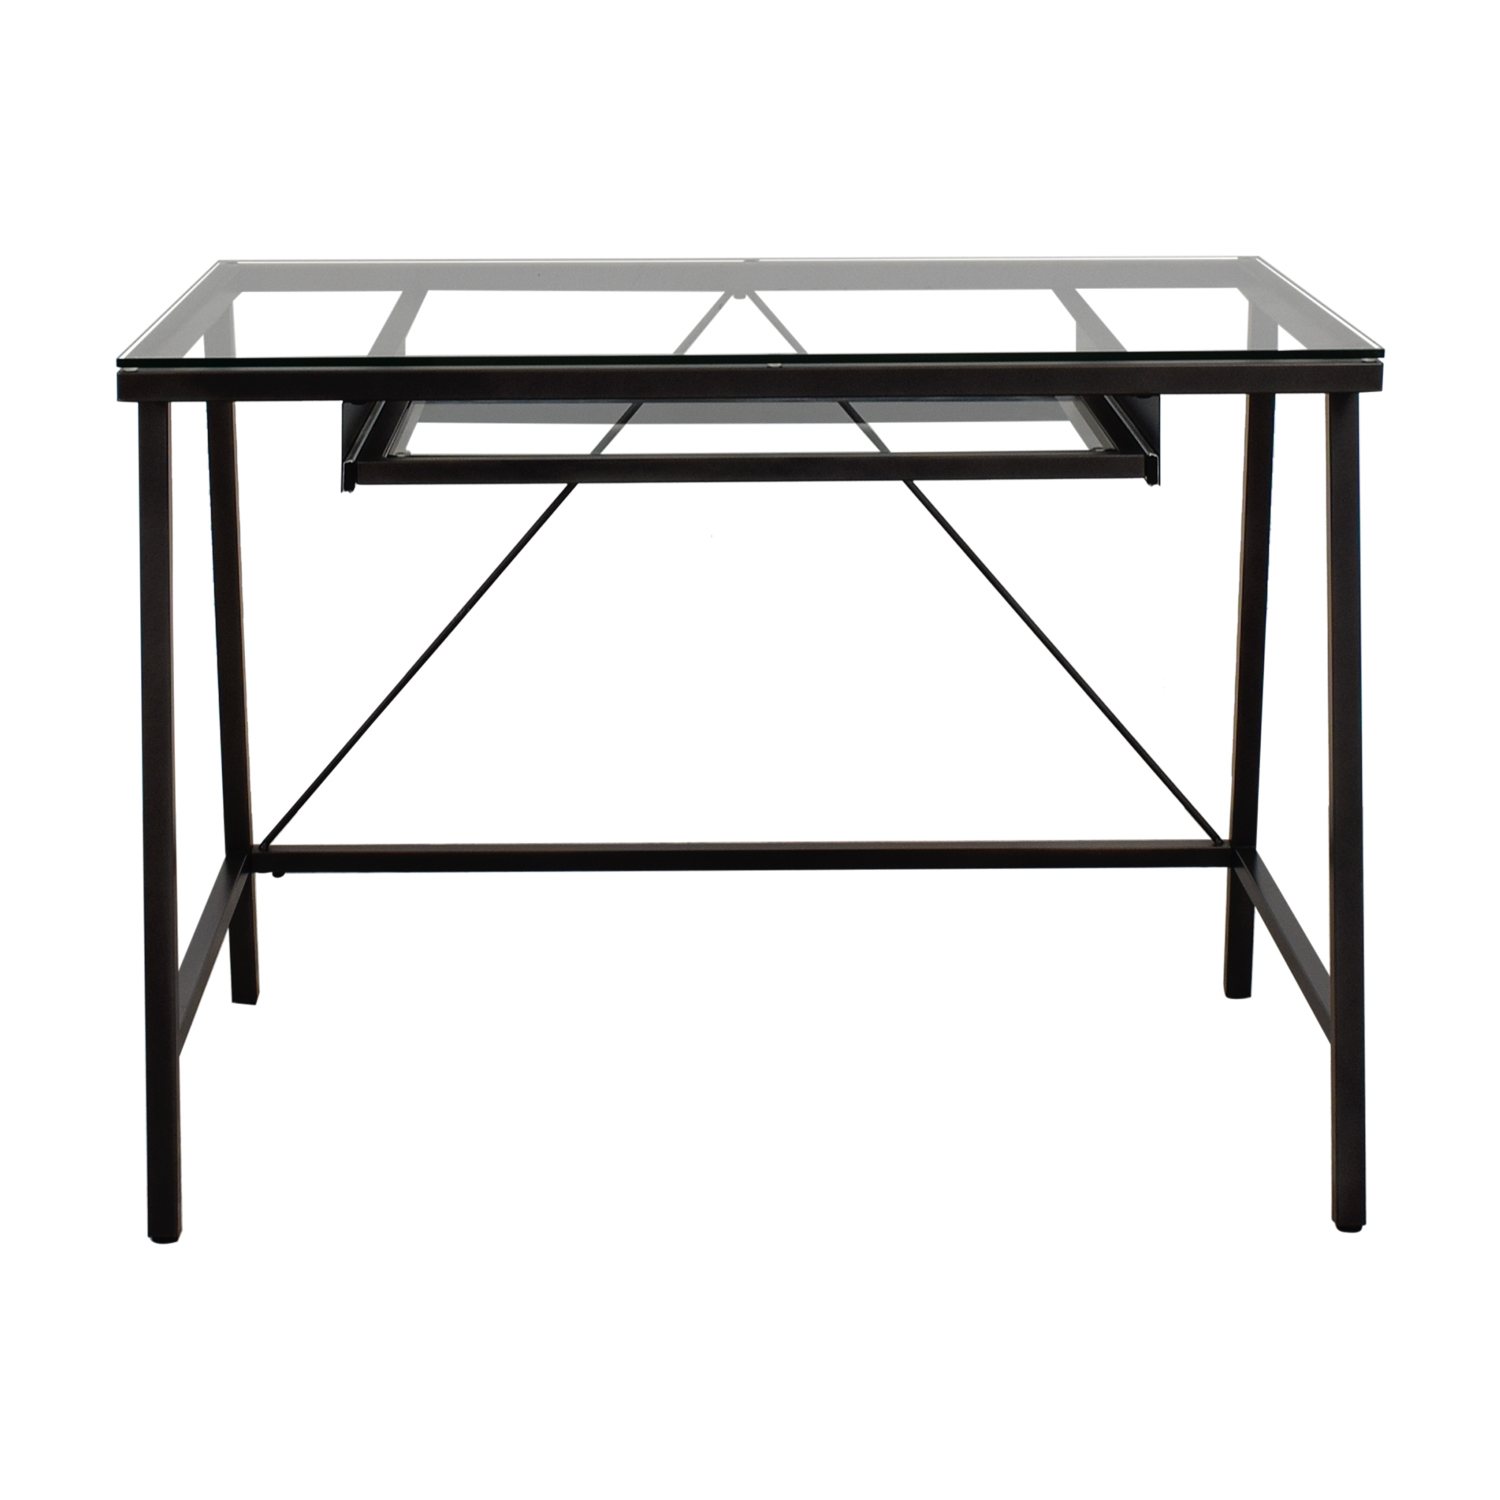 CB2 Dwight Steel and Glass Desk / Tables